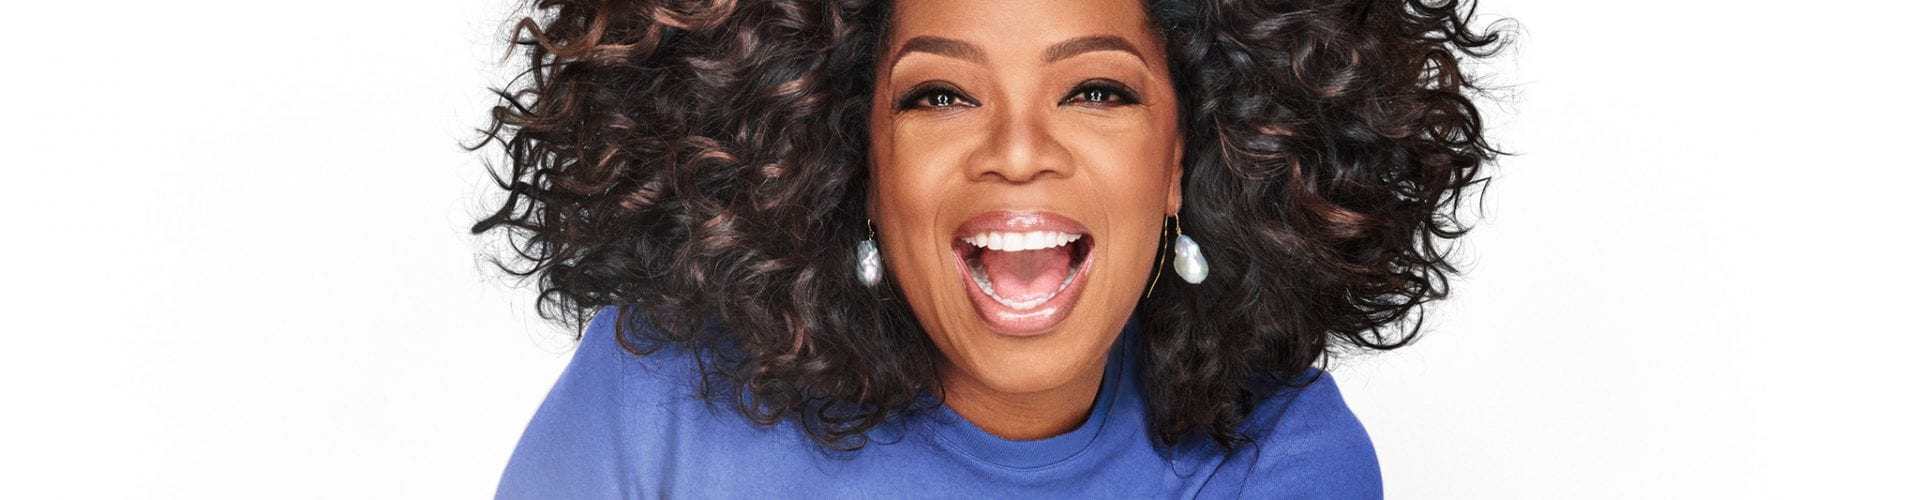 MLB Playoffs, Oprah Tour Among Tickets On Sale Friday